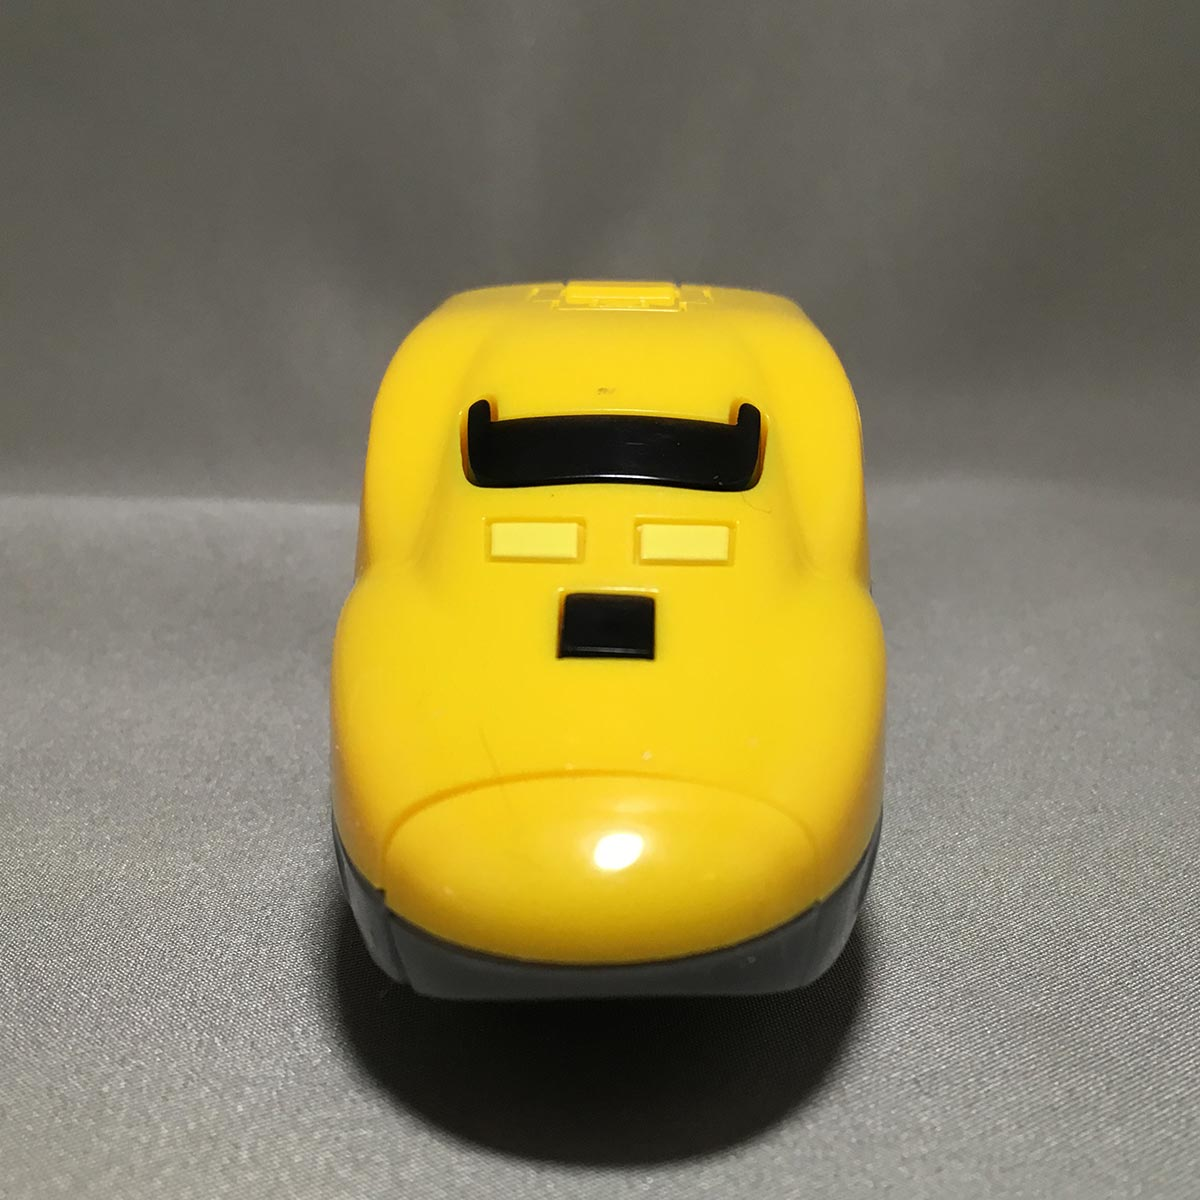 Doctor Yellow Pencil Sharpener - front view